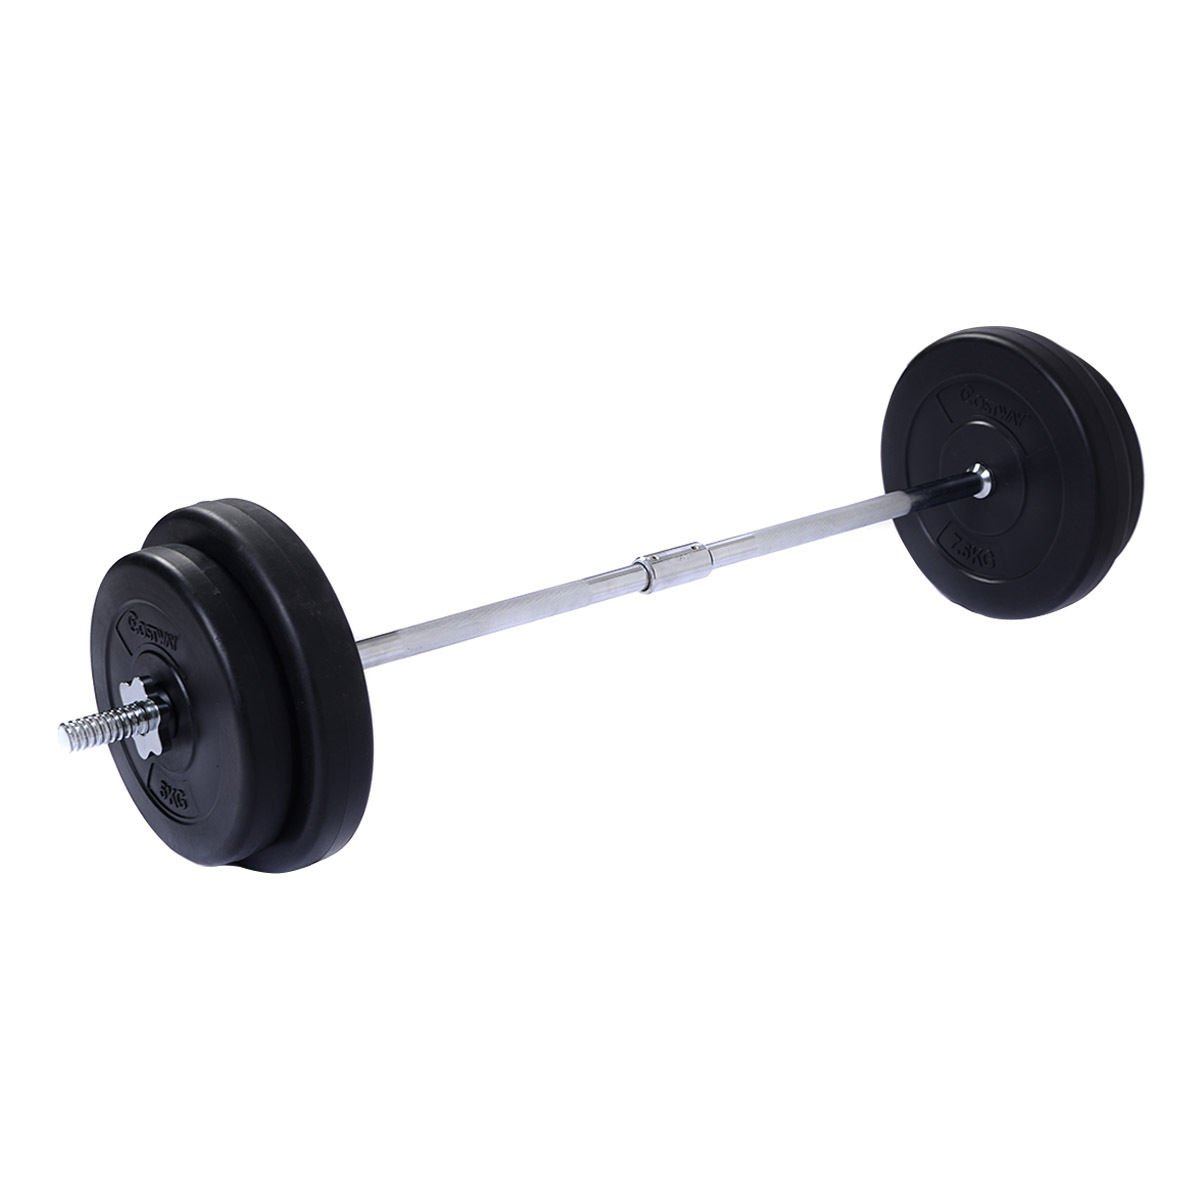 Giantex 66 LB Barbell Dumbbell Workout Weight Set Gym Lifting Exercise Curl Bar w/2 Star Lock Clamp Collars 4 Plates